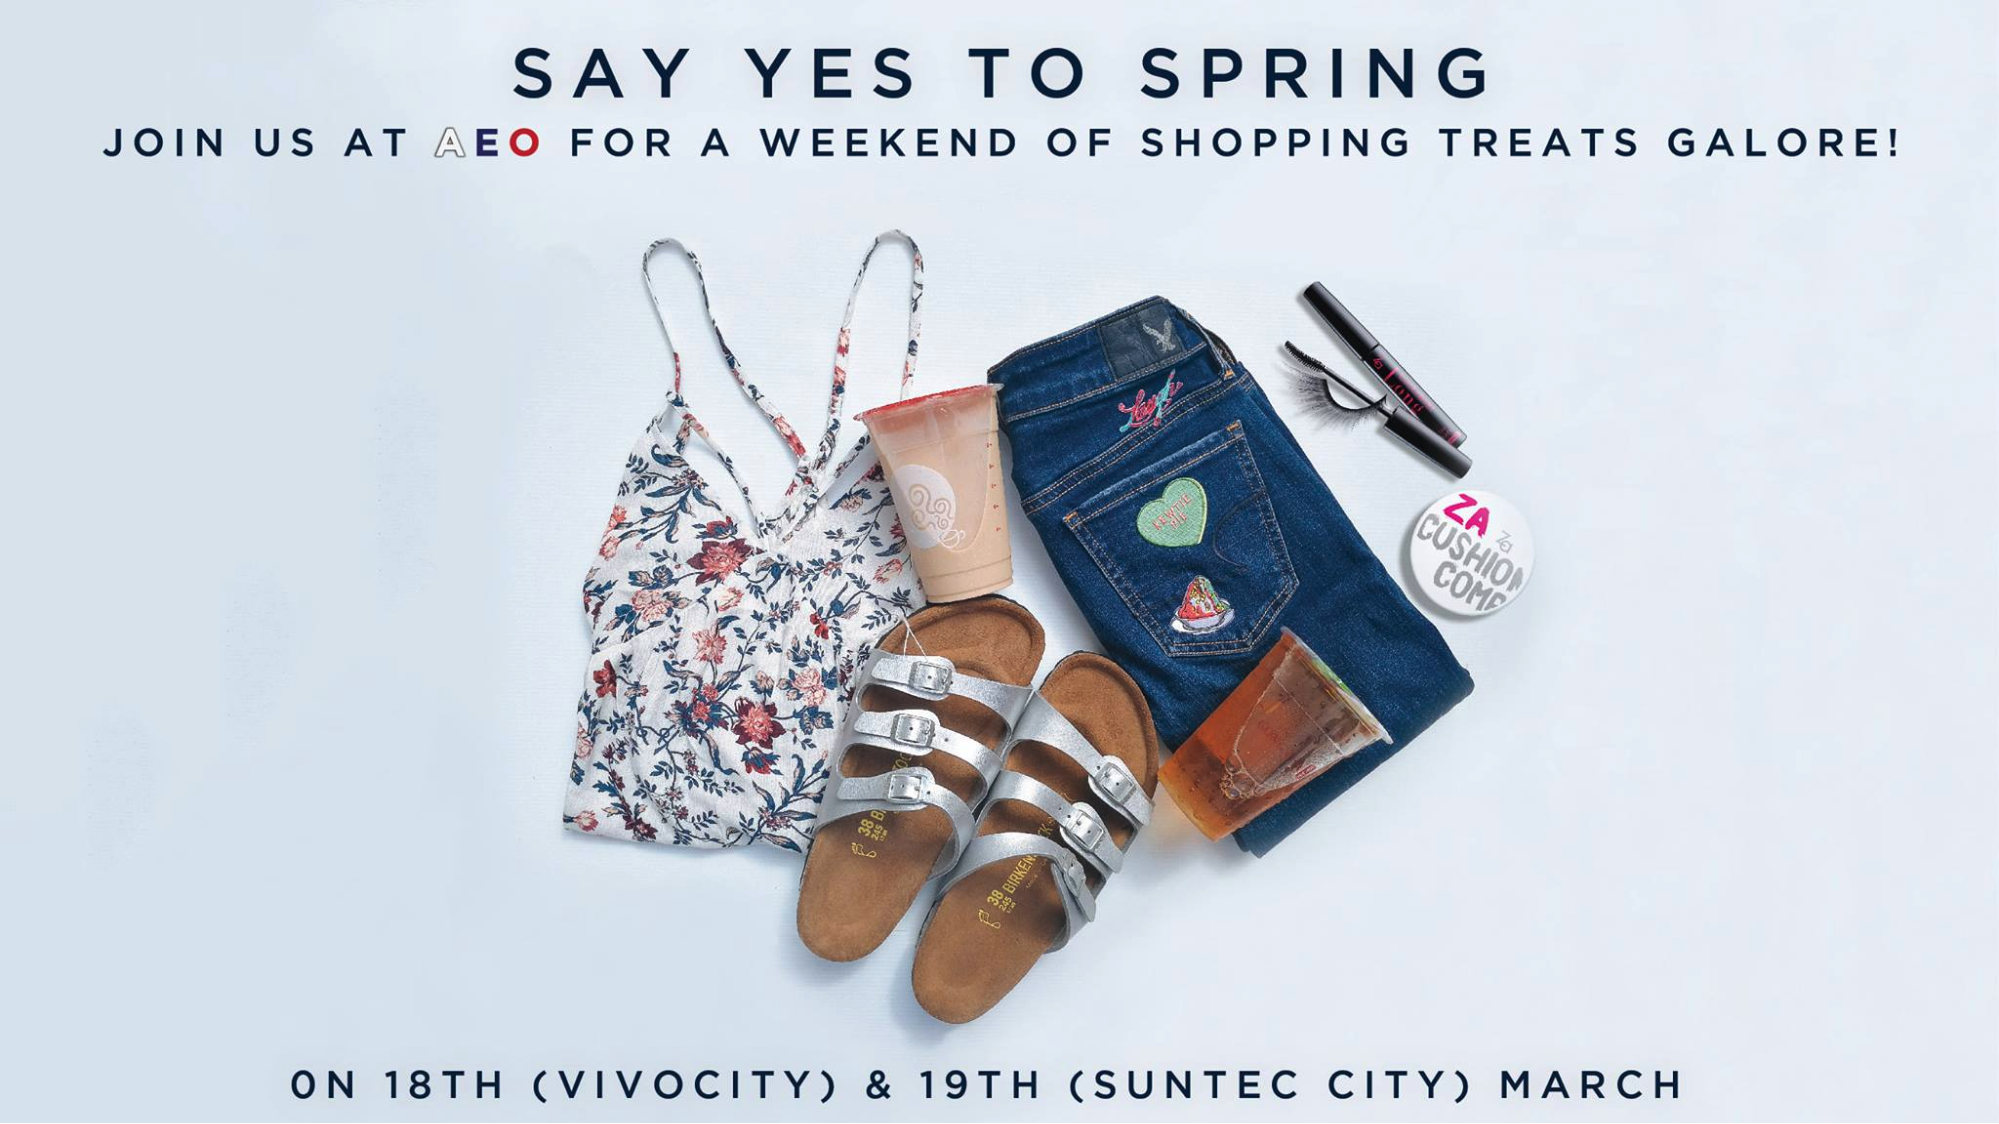 American Eagle Outfitters' is having a spring event full of attractive promotions and goodies!